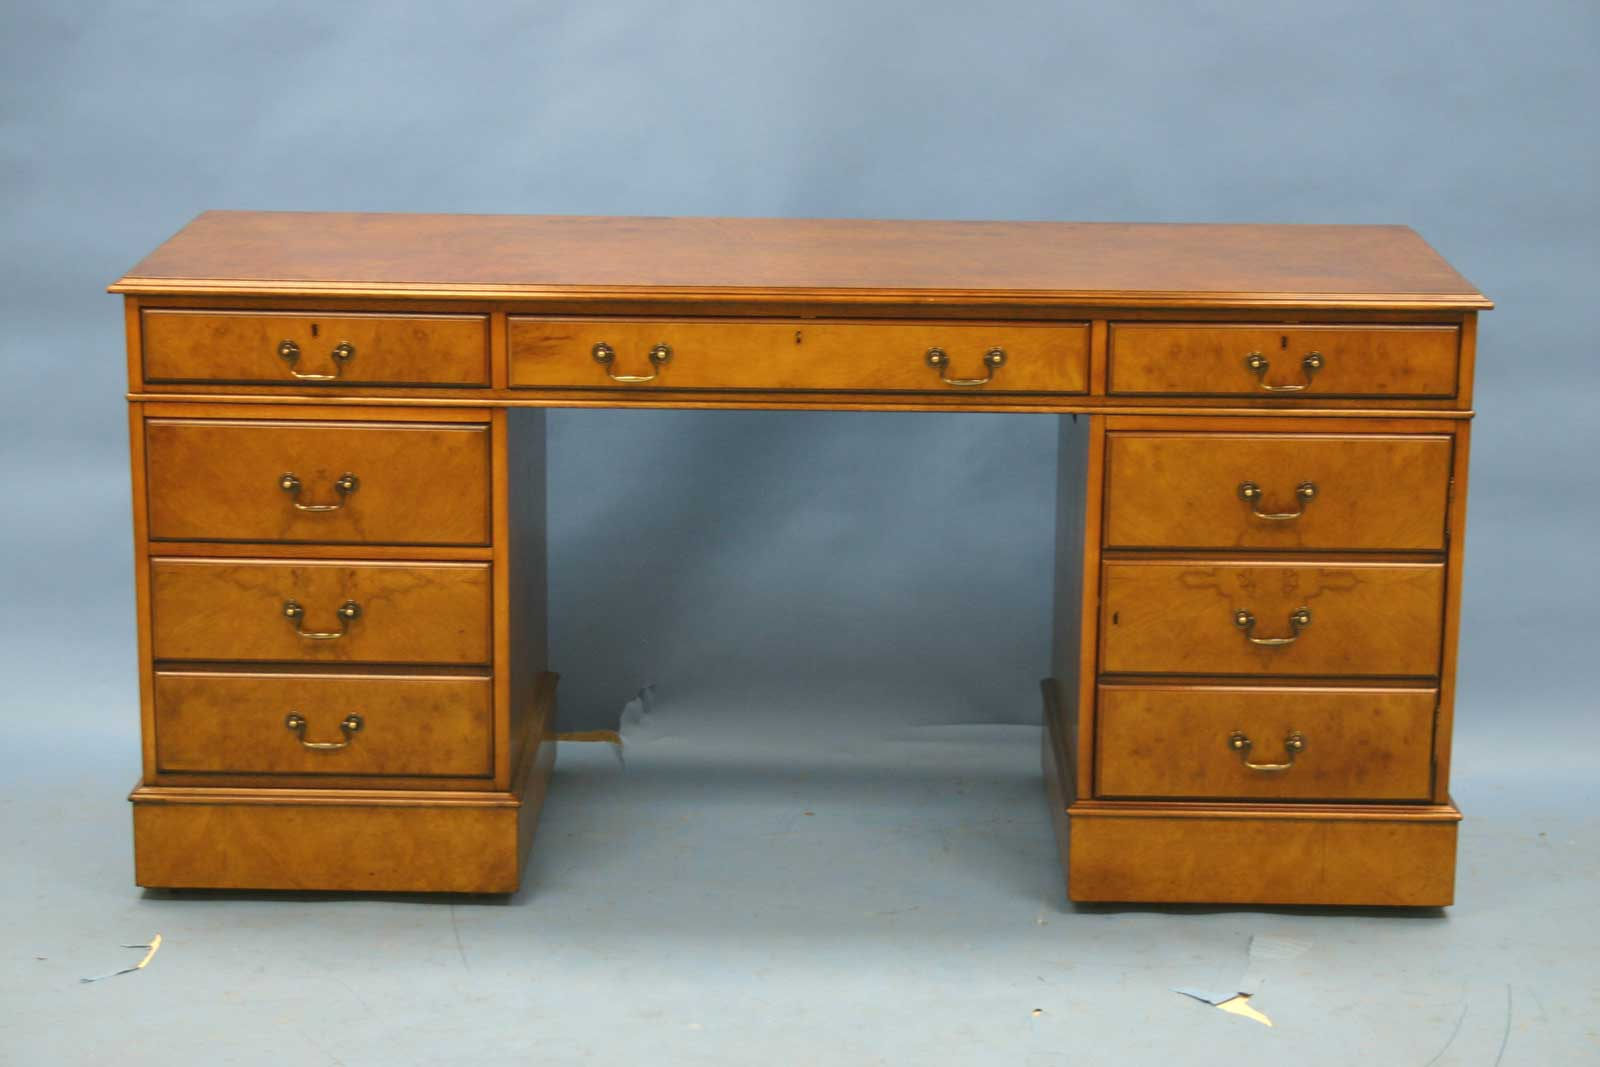 Antique Wooden Credenza Computer Desk with Drawer